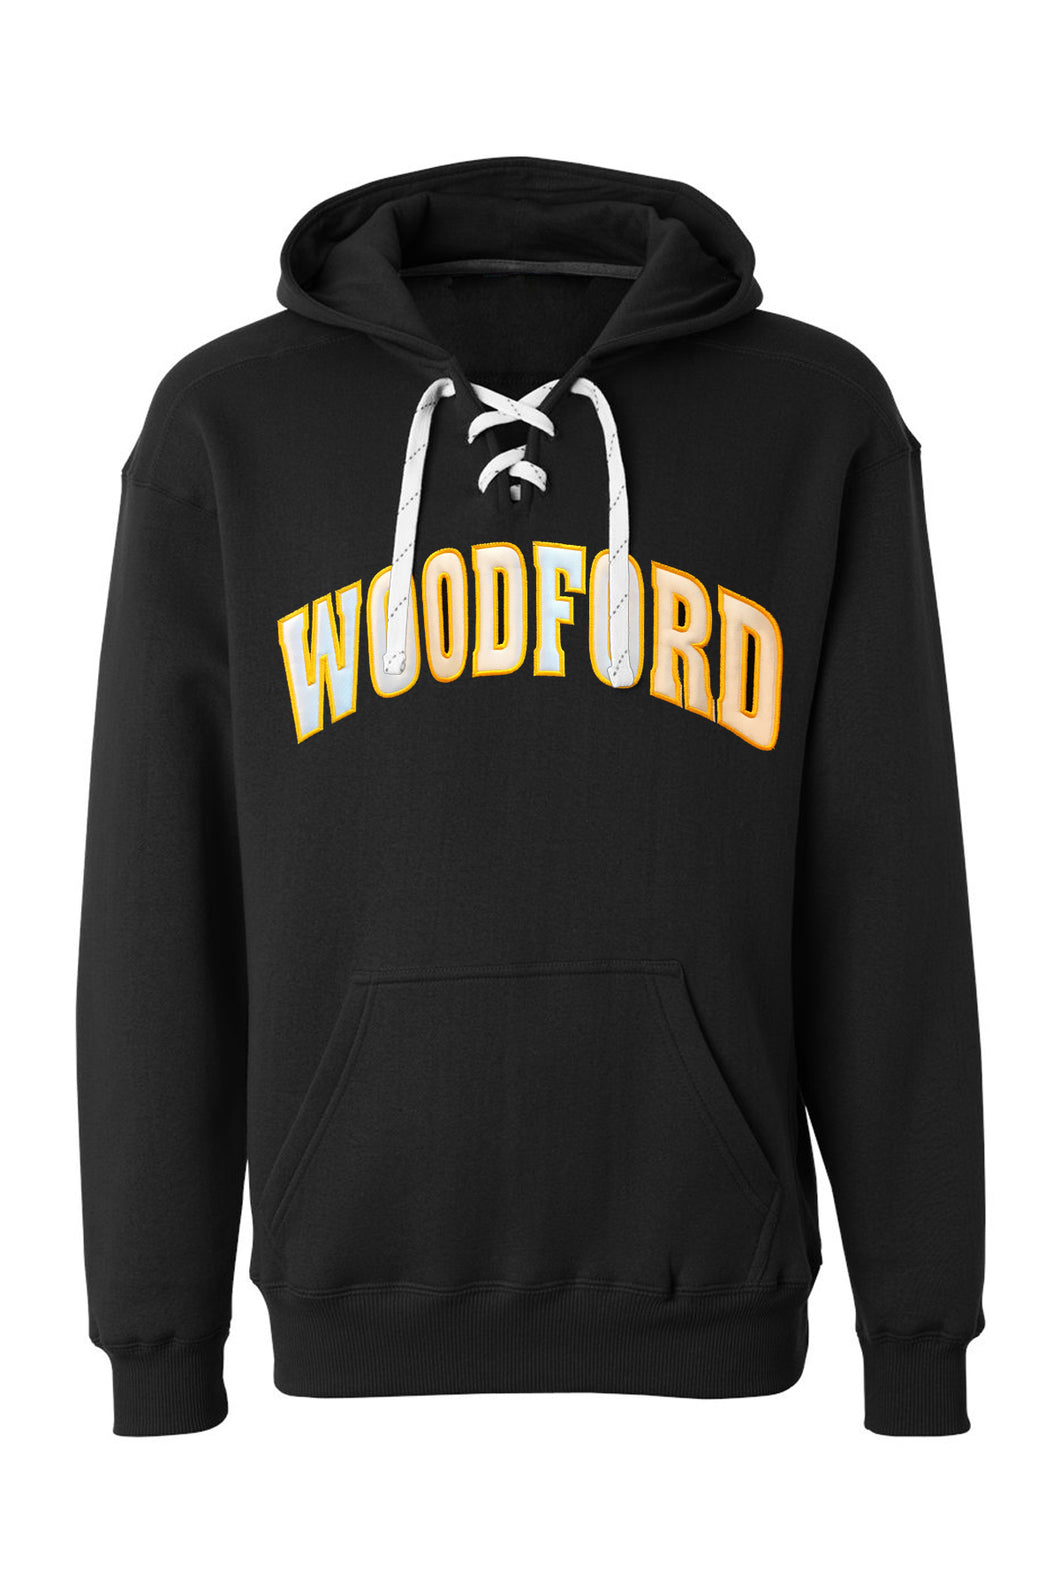 WINTER CLEARANCE - 50% OFF - Woodford Thowback Applique Lace Up Hoodie